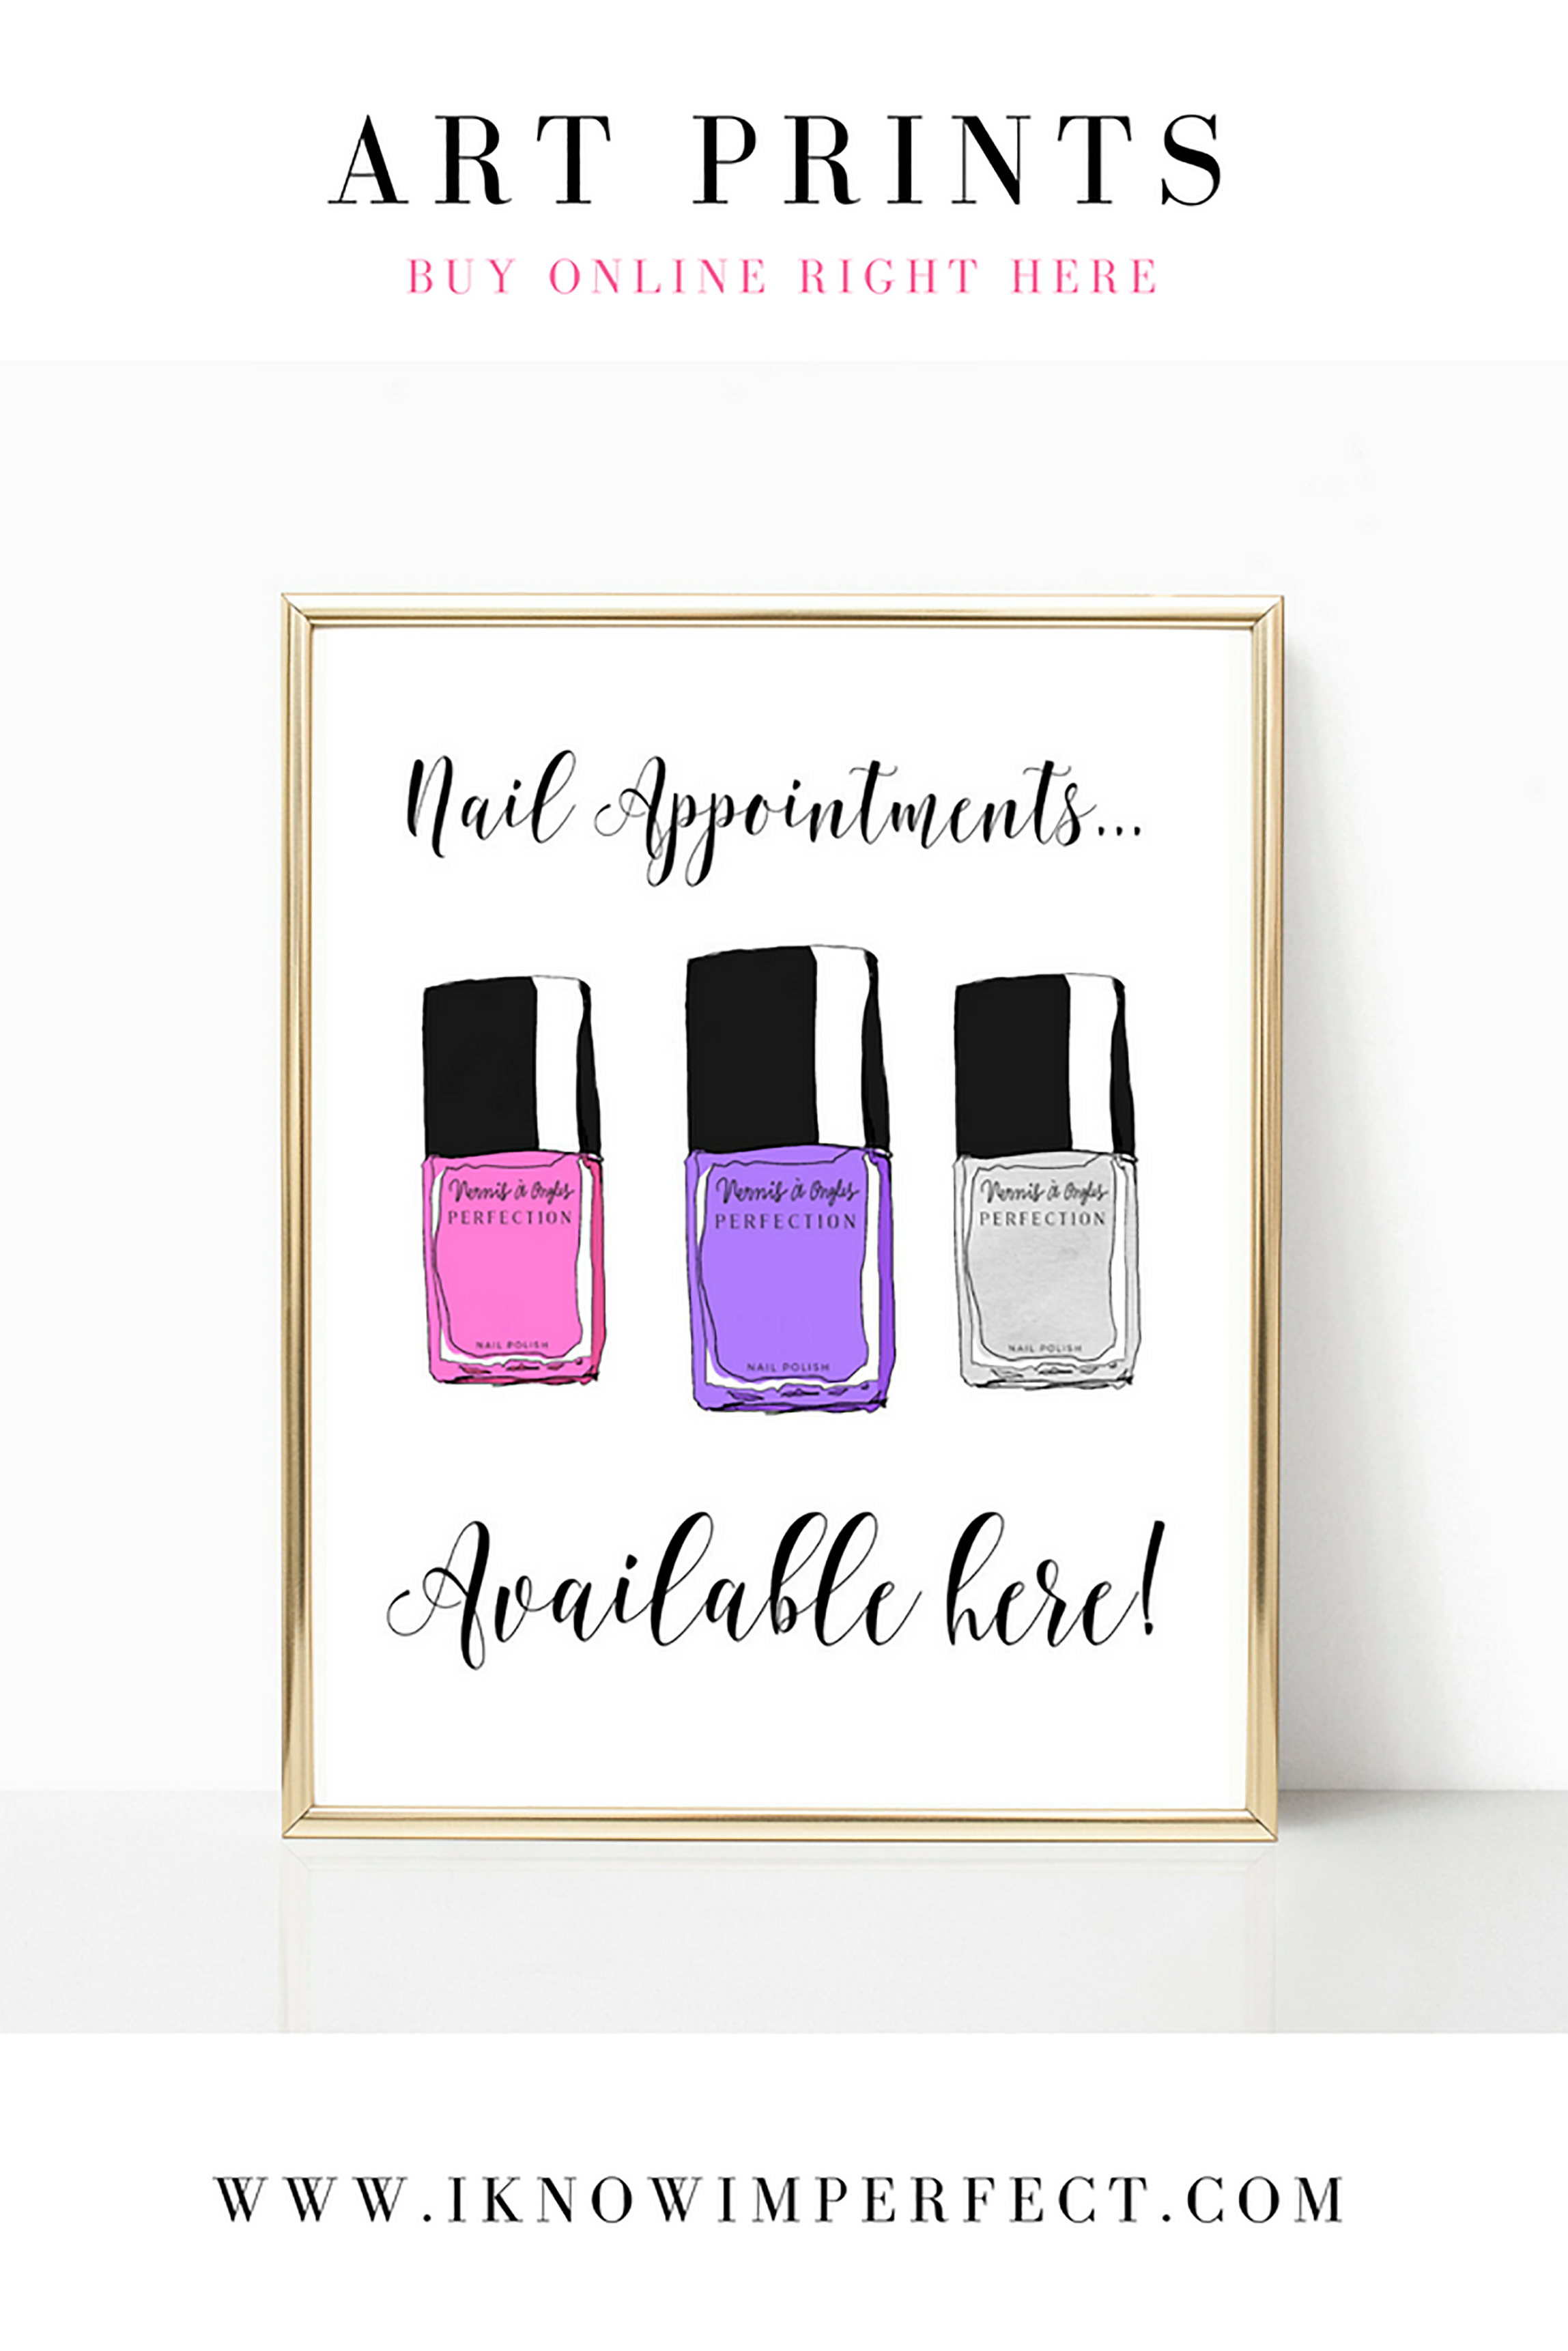 Beautiful fun and impossibly girly art prints perfect for adding a